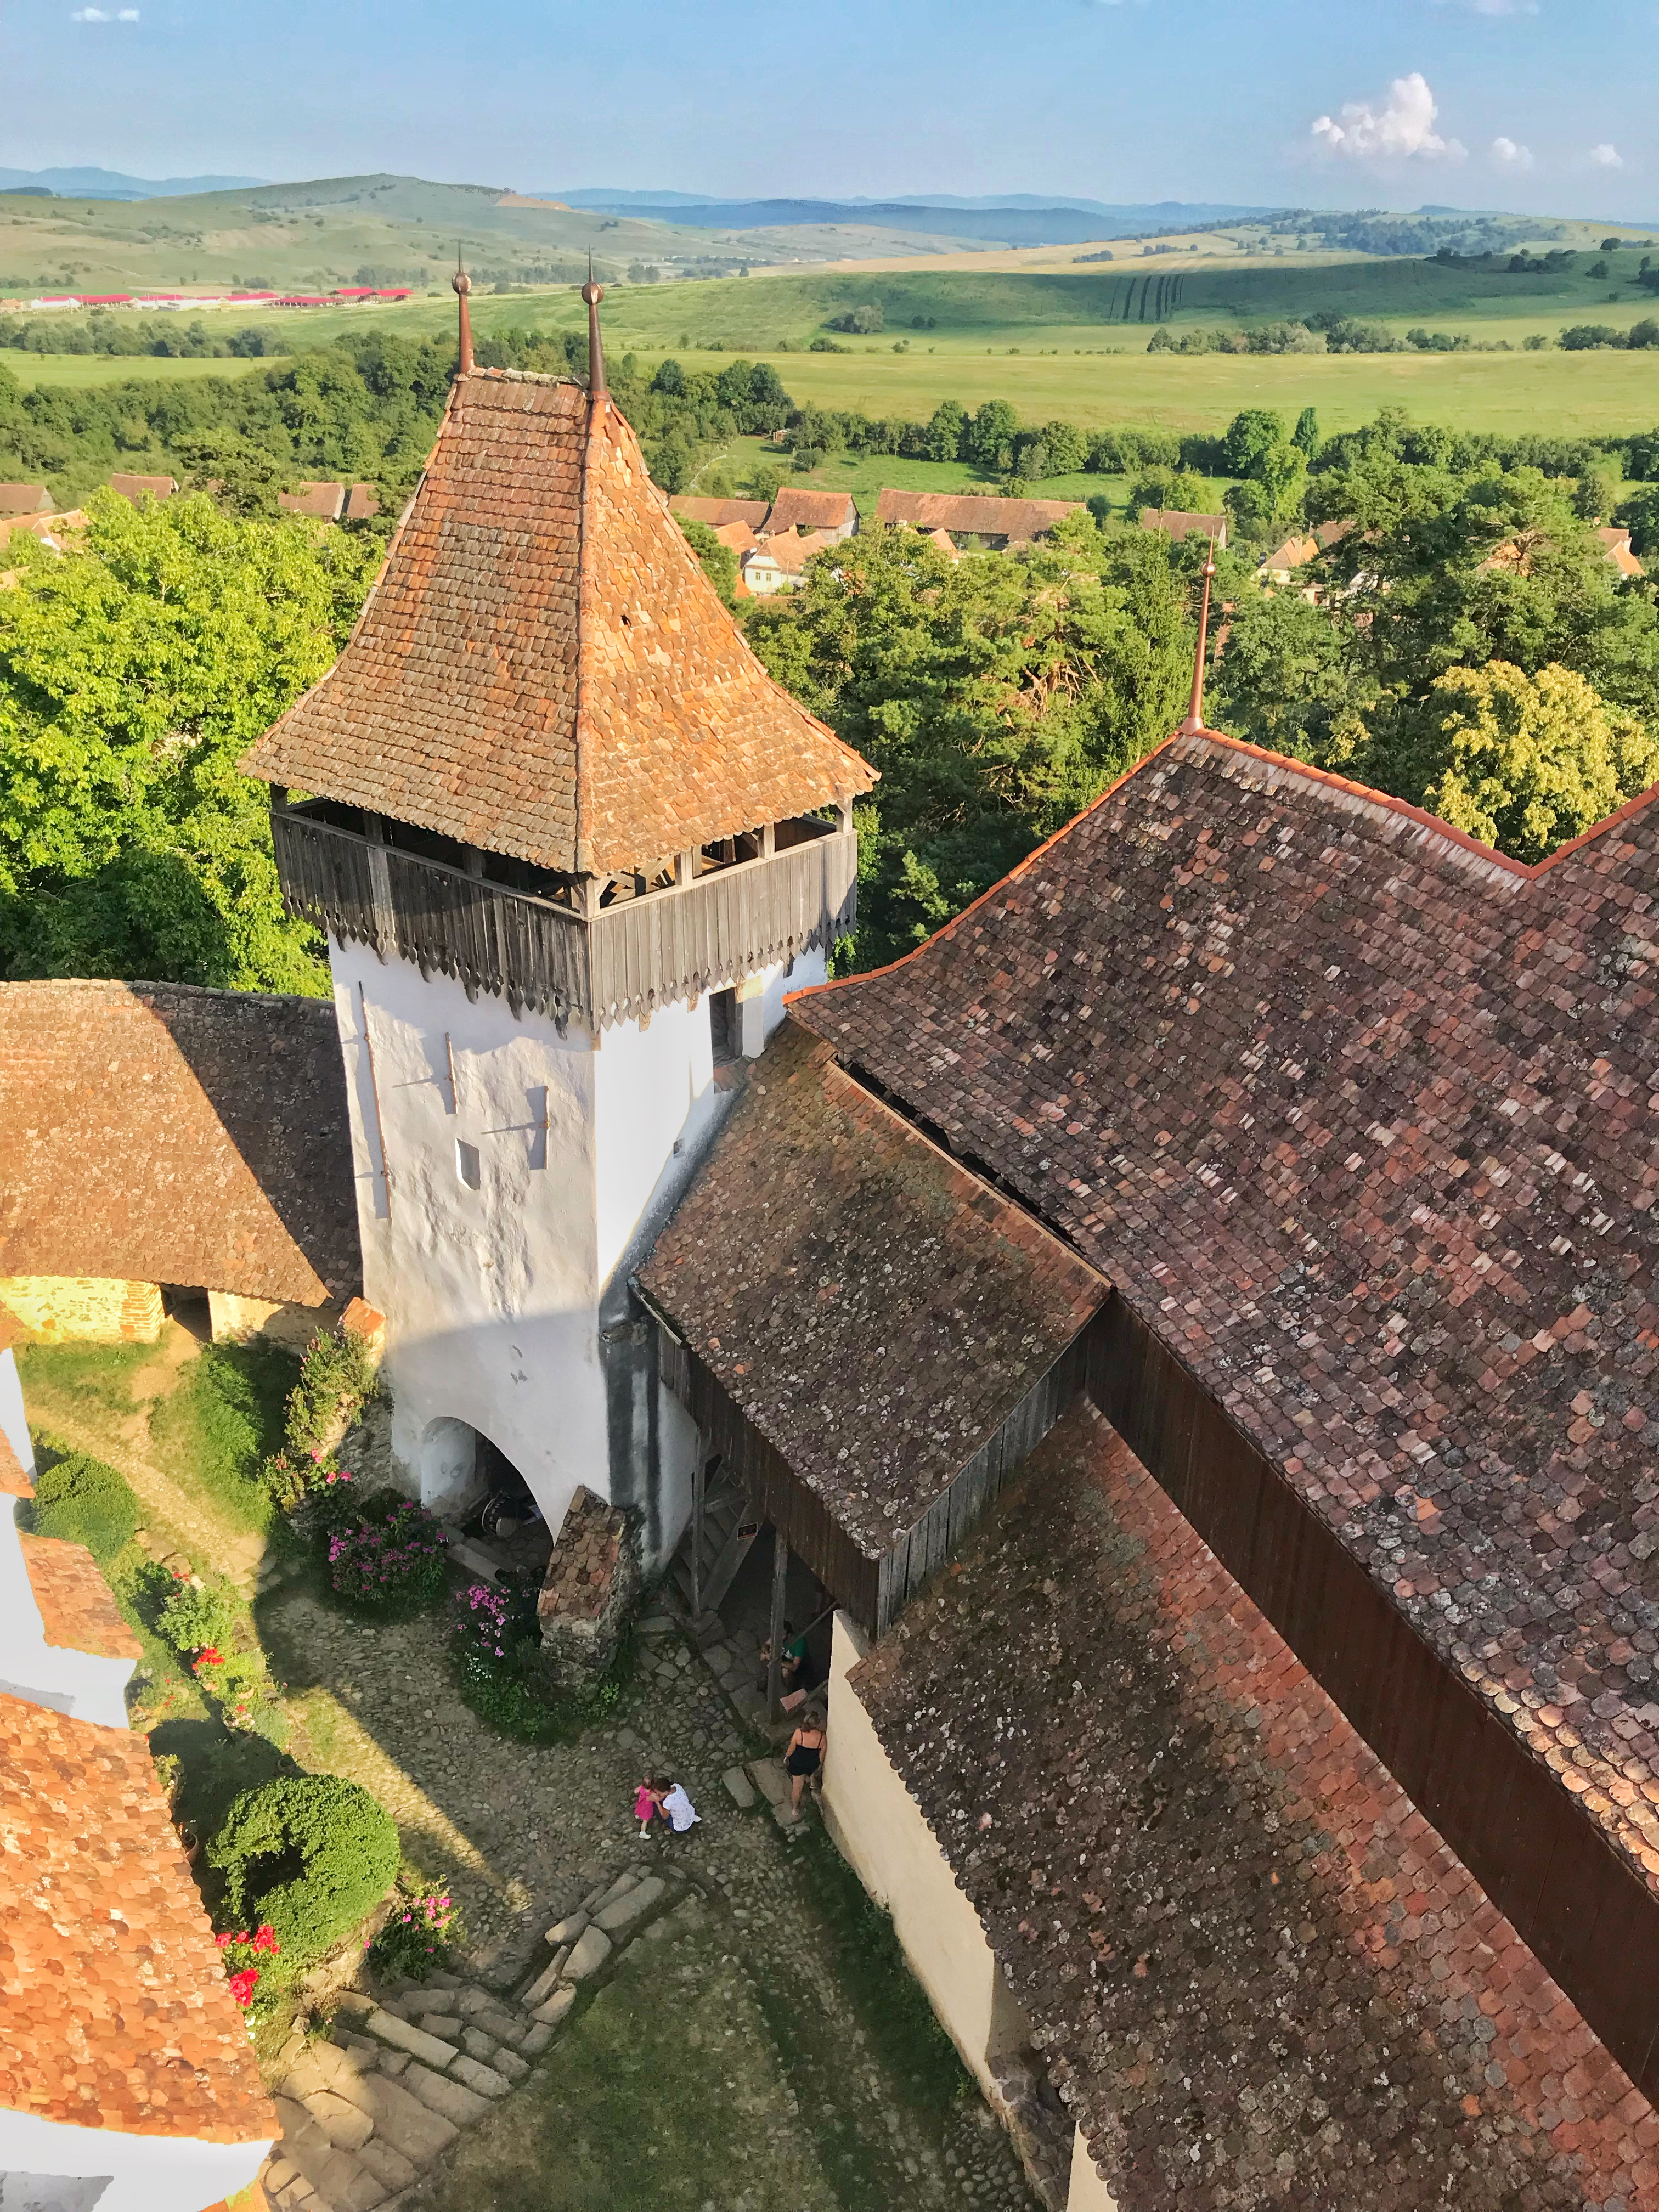 Things to do in Transylvania